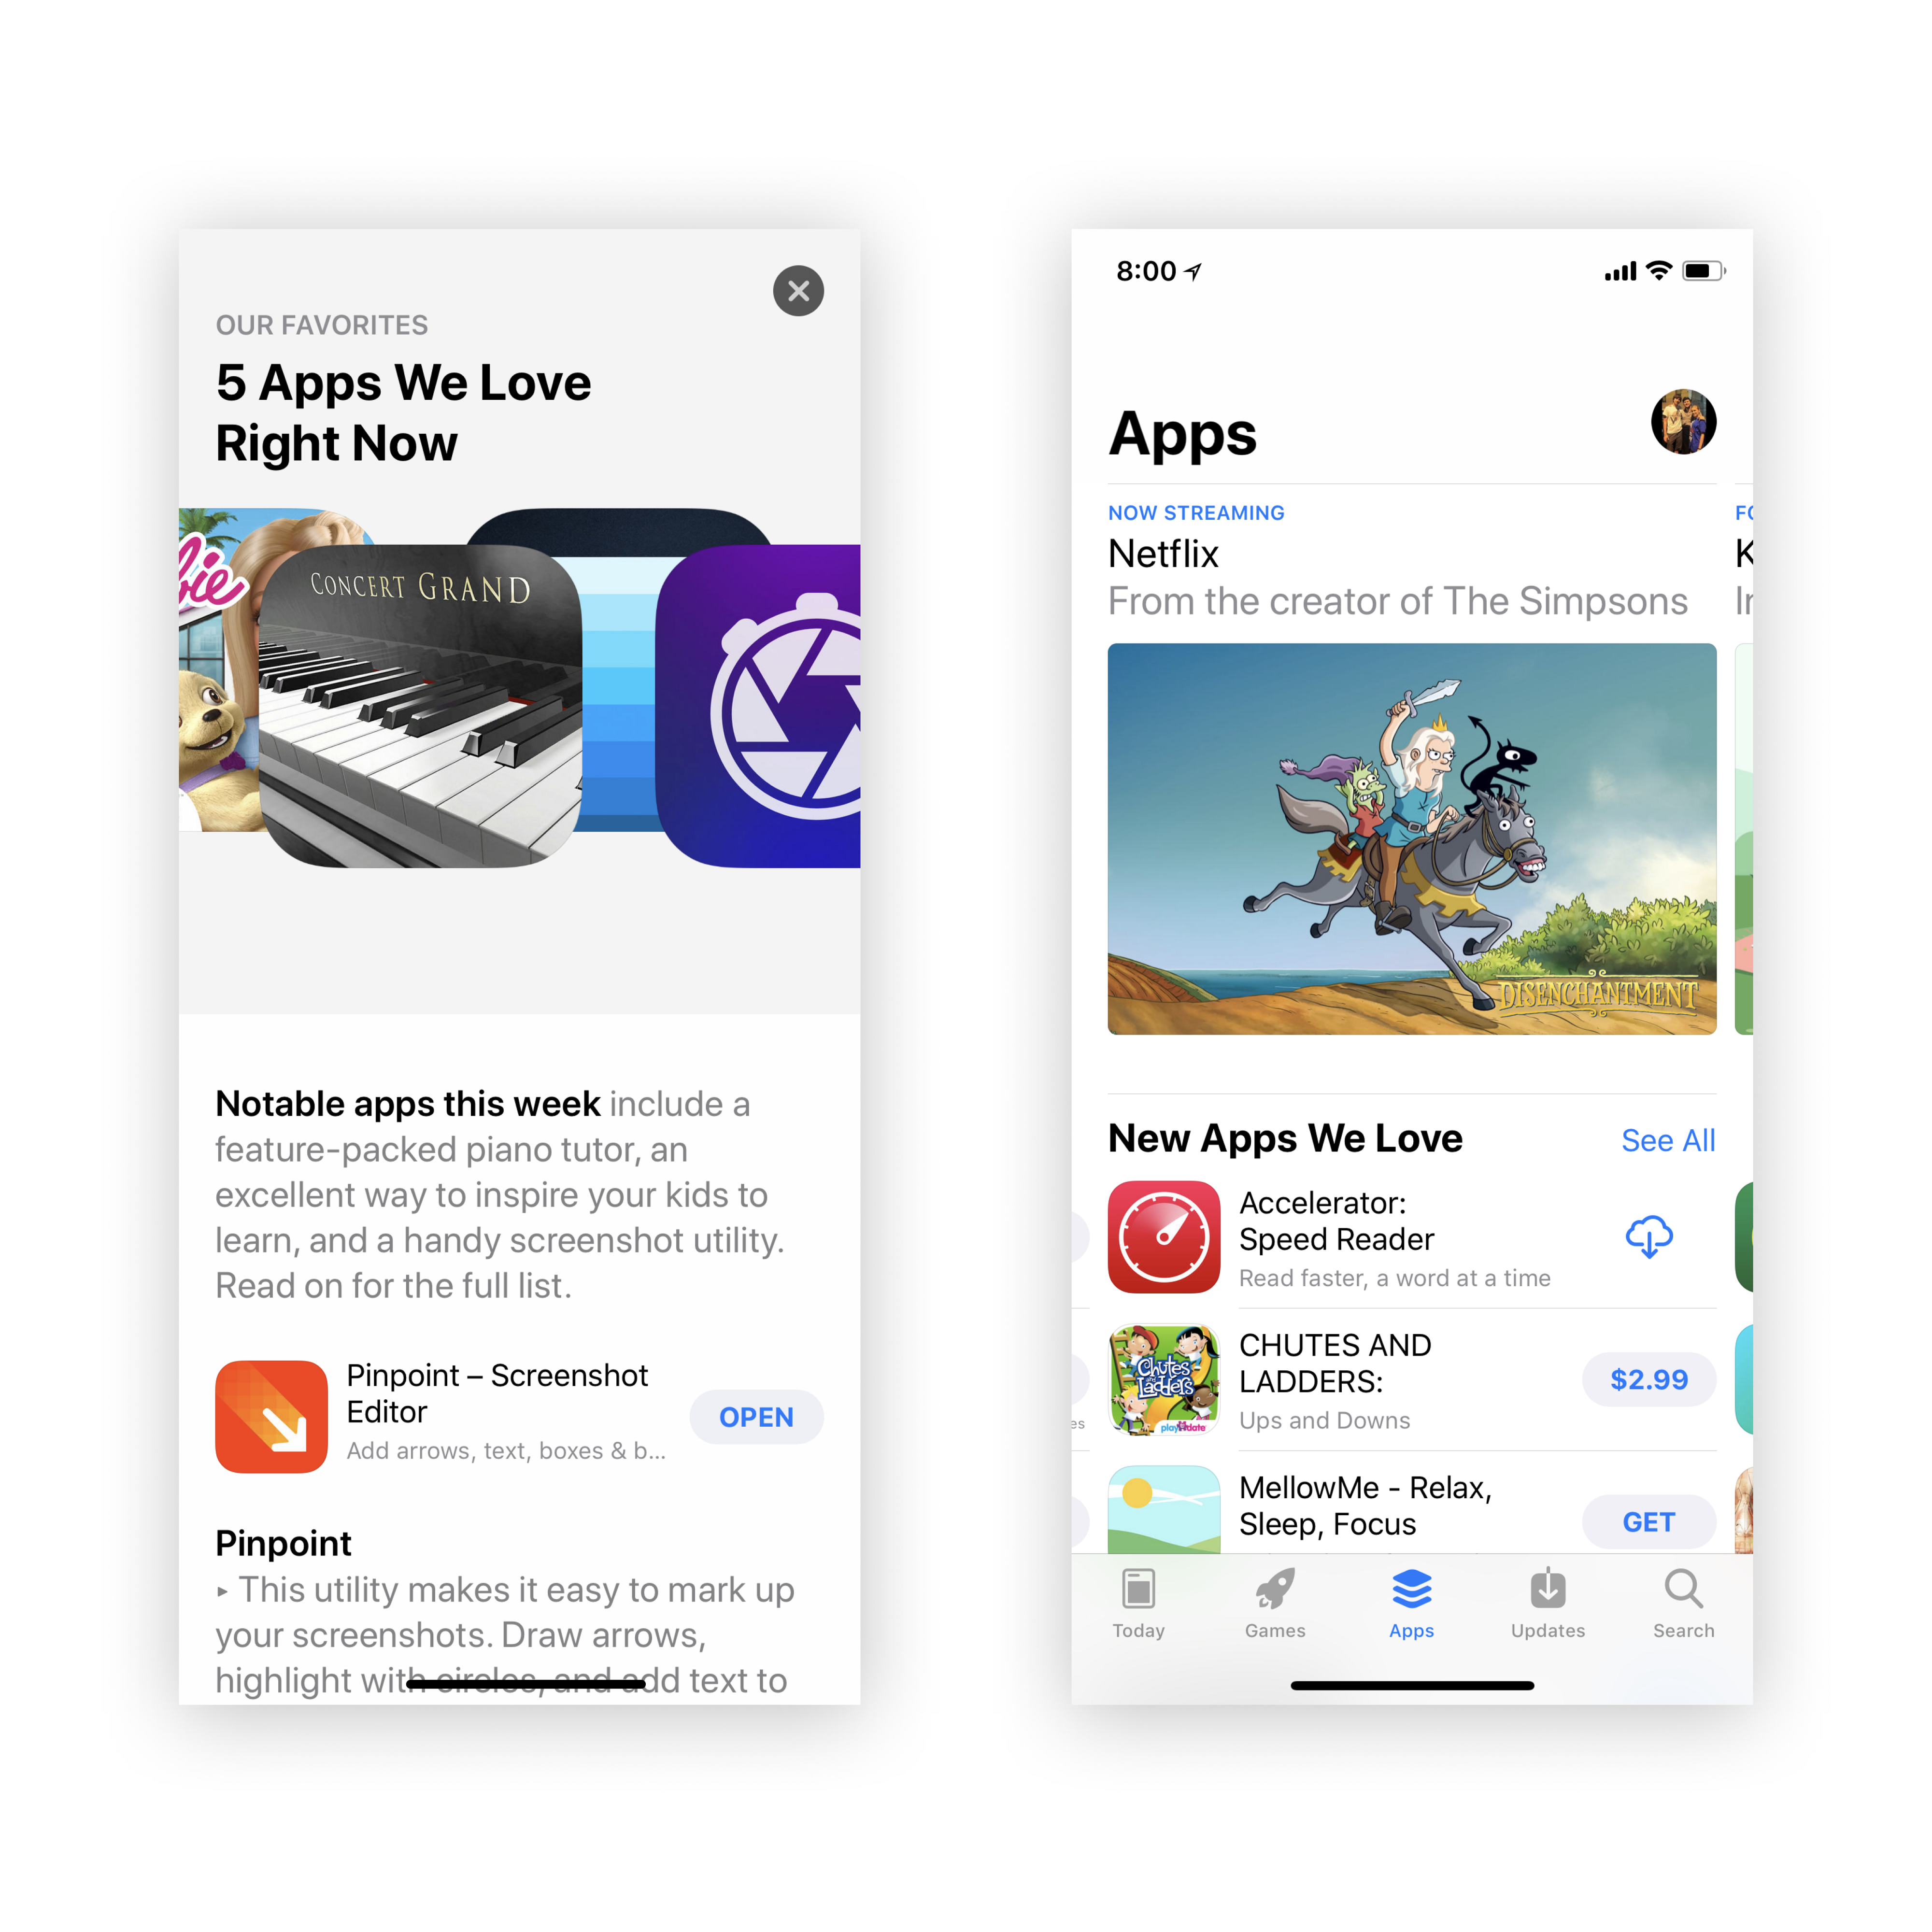 Two screenshots of the App Store showing Pinpoint and Accelerator featured by Apple.